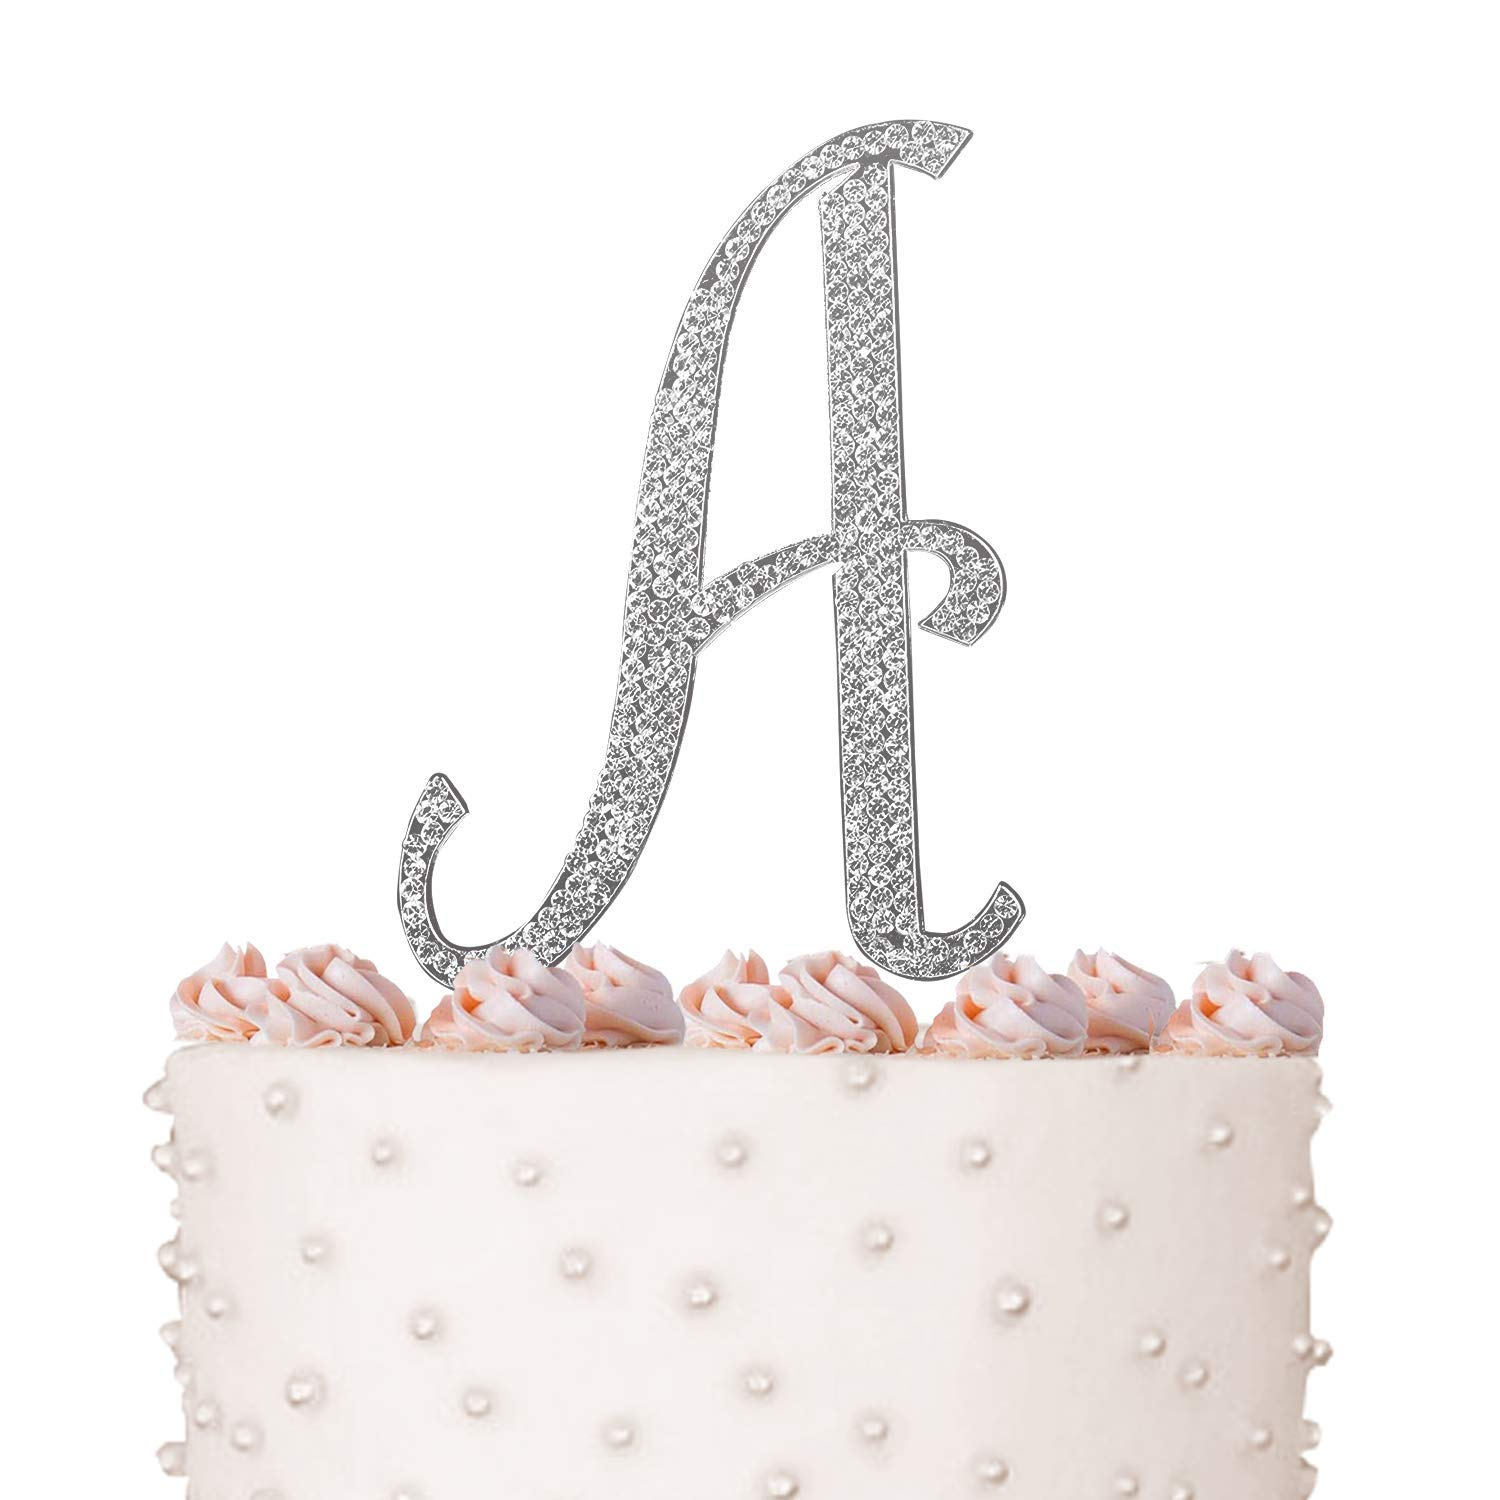 Letter A, Initials, Happy Birthday Cake Topper, Wedding, Anniversary, Vow Renewal, Crystal Rhinestones on Silver Metal, Party Decorations, Favors